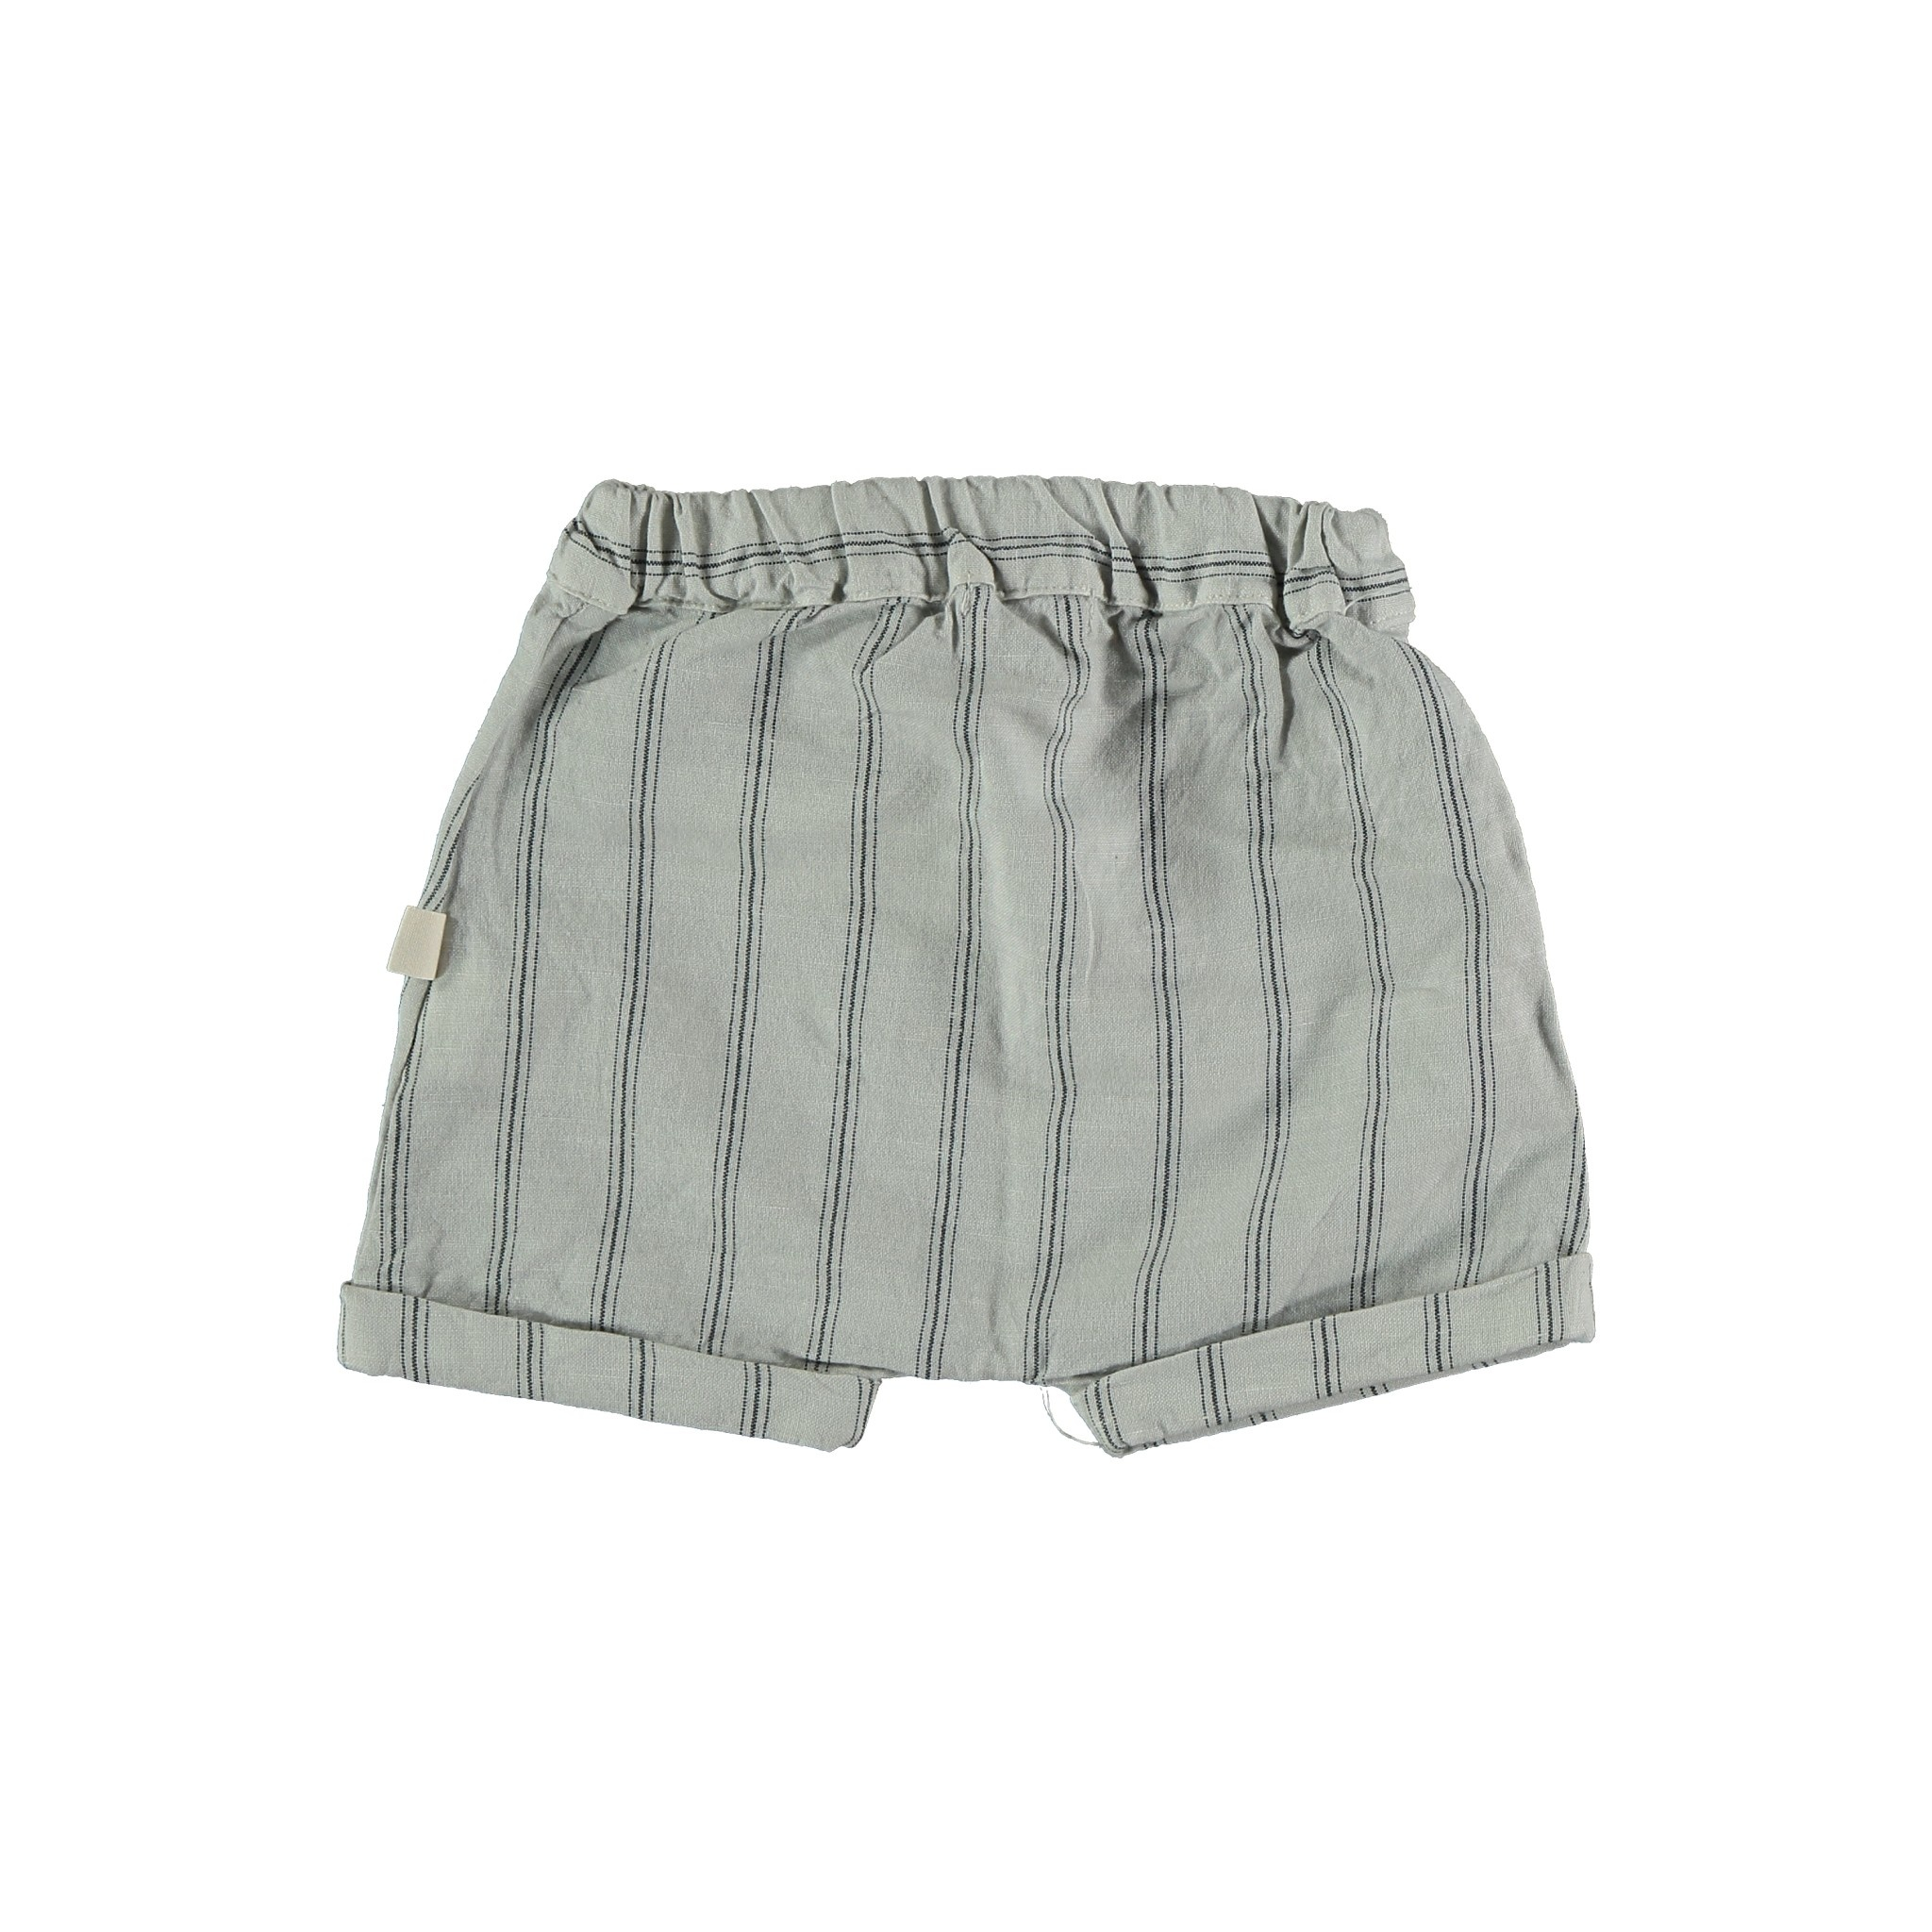 Kai striped shorts light grey-2